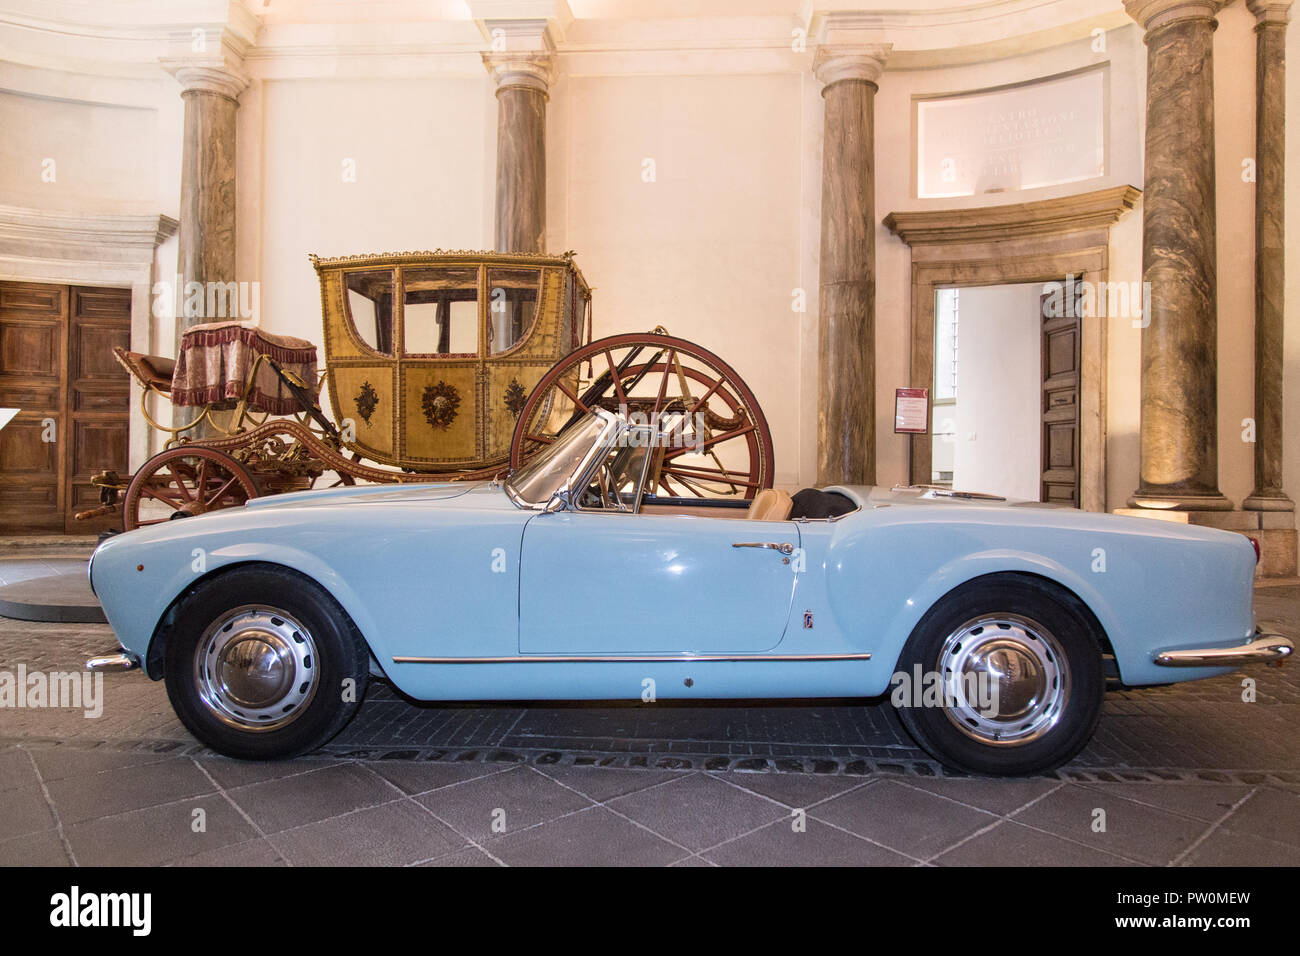 Roma, Italy. 11th Oct, 2018. Lancia Aurelia B24 convertible, the original spider of the movie 'Il Sorpasso' Inauguration of the exhibition 'Il sorpasso. Quando l'Italia si mise a correre, 1946-1961' at the Museum of Rome in Palazzo Braschi Credit: Matteo Nardone/Pacific Press/Alamy Live News - Stock Image